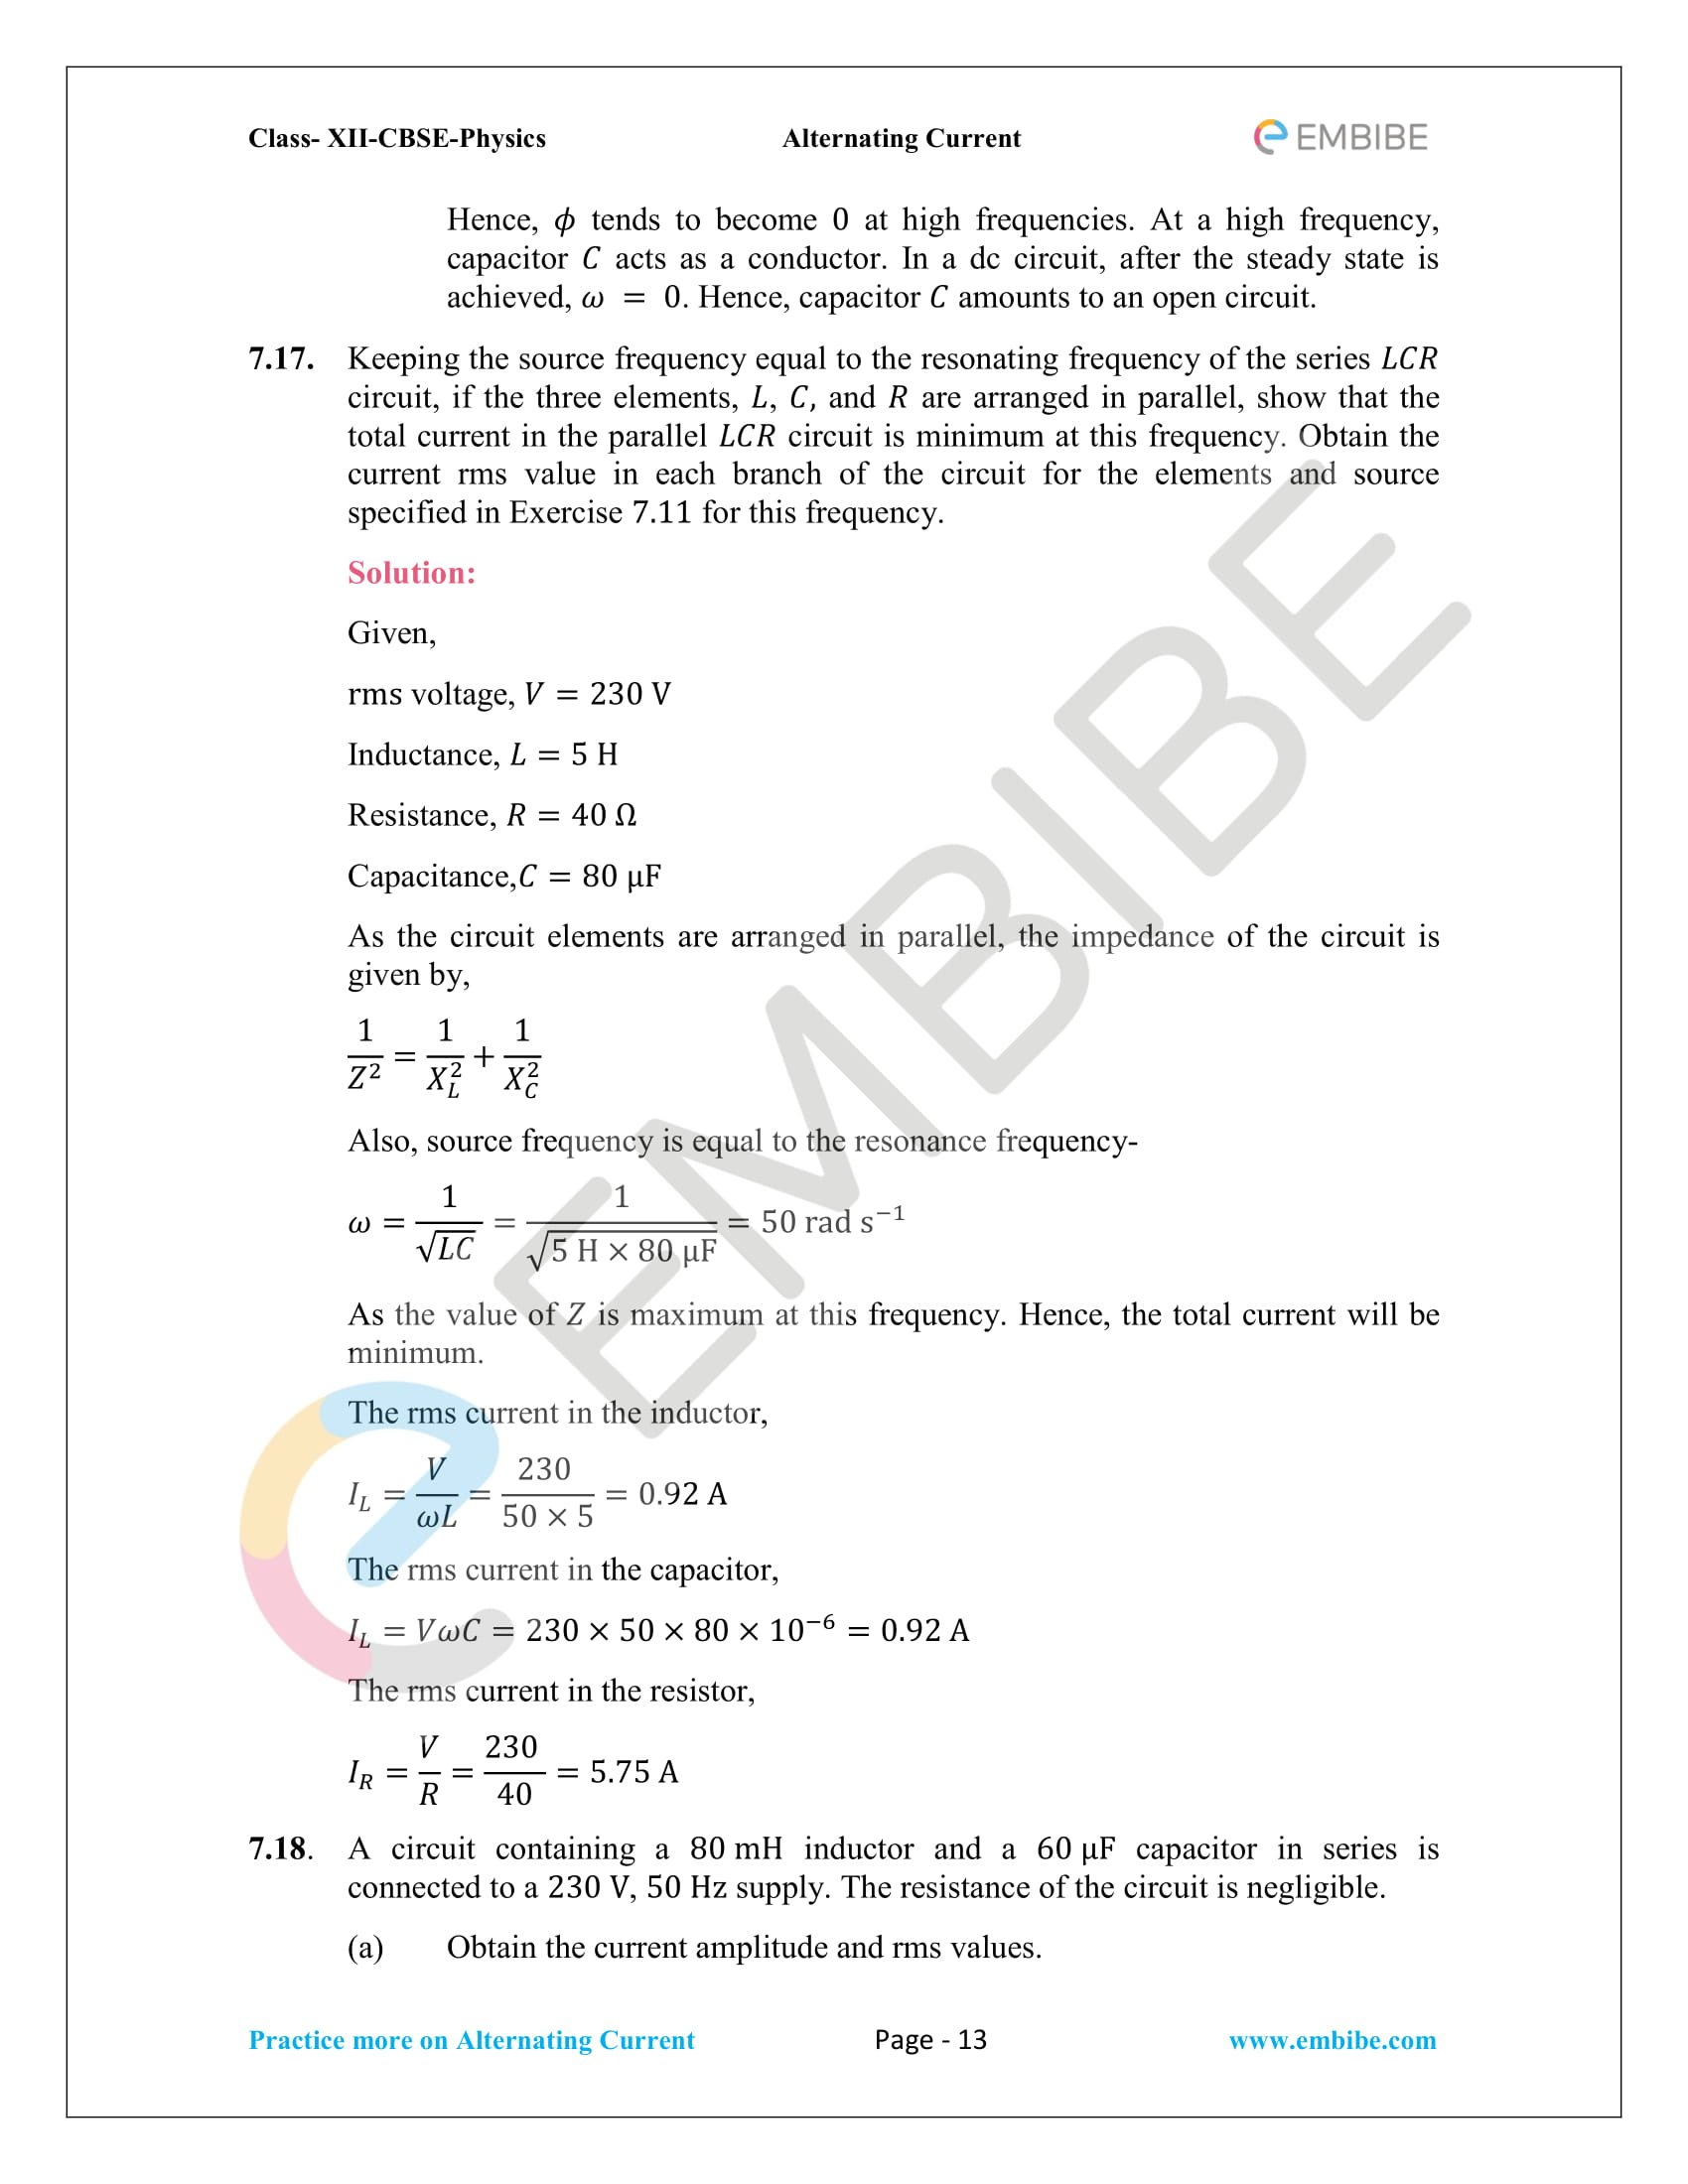 NCERT Solutions for Class 12 Chapter 7 Alternating Current-13